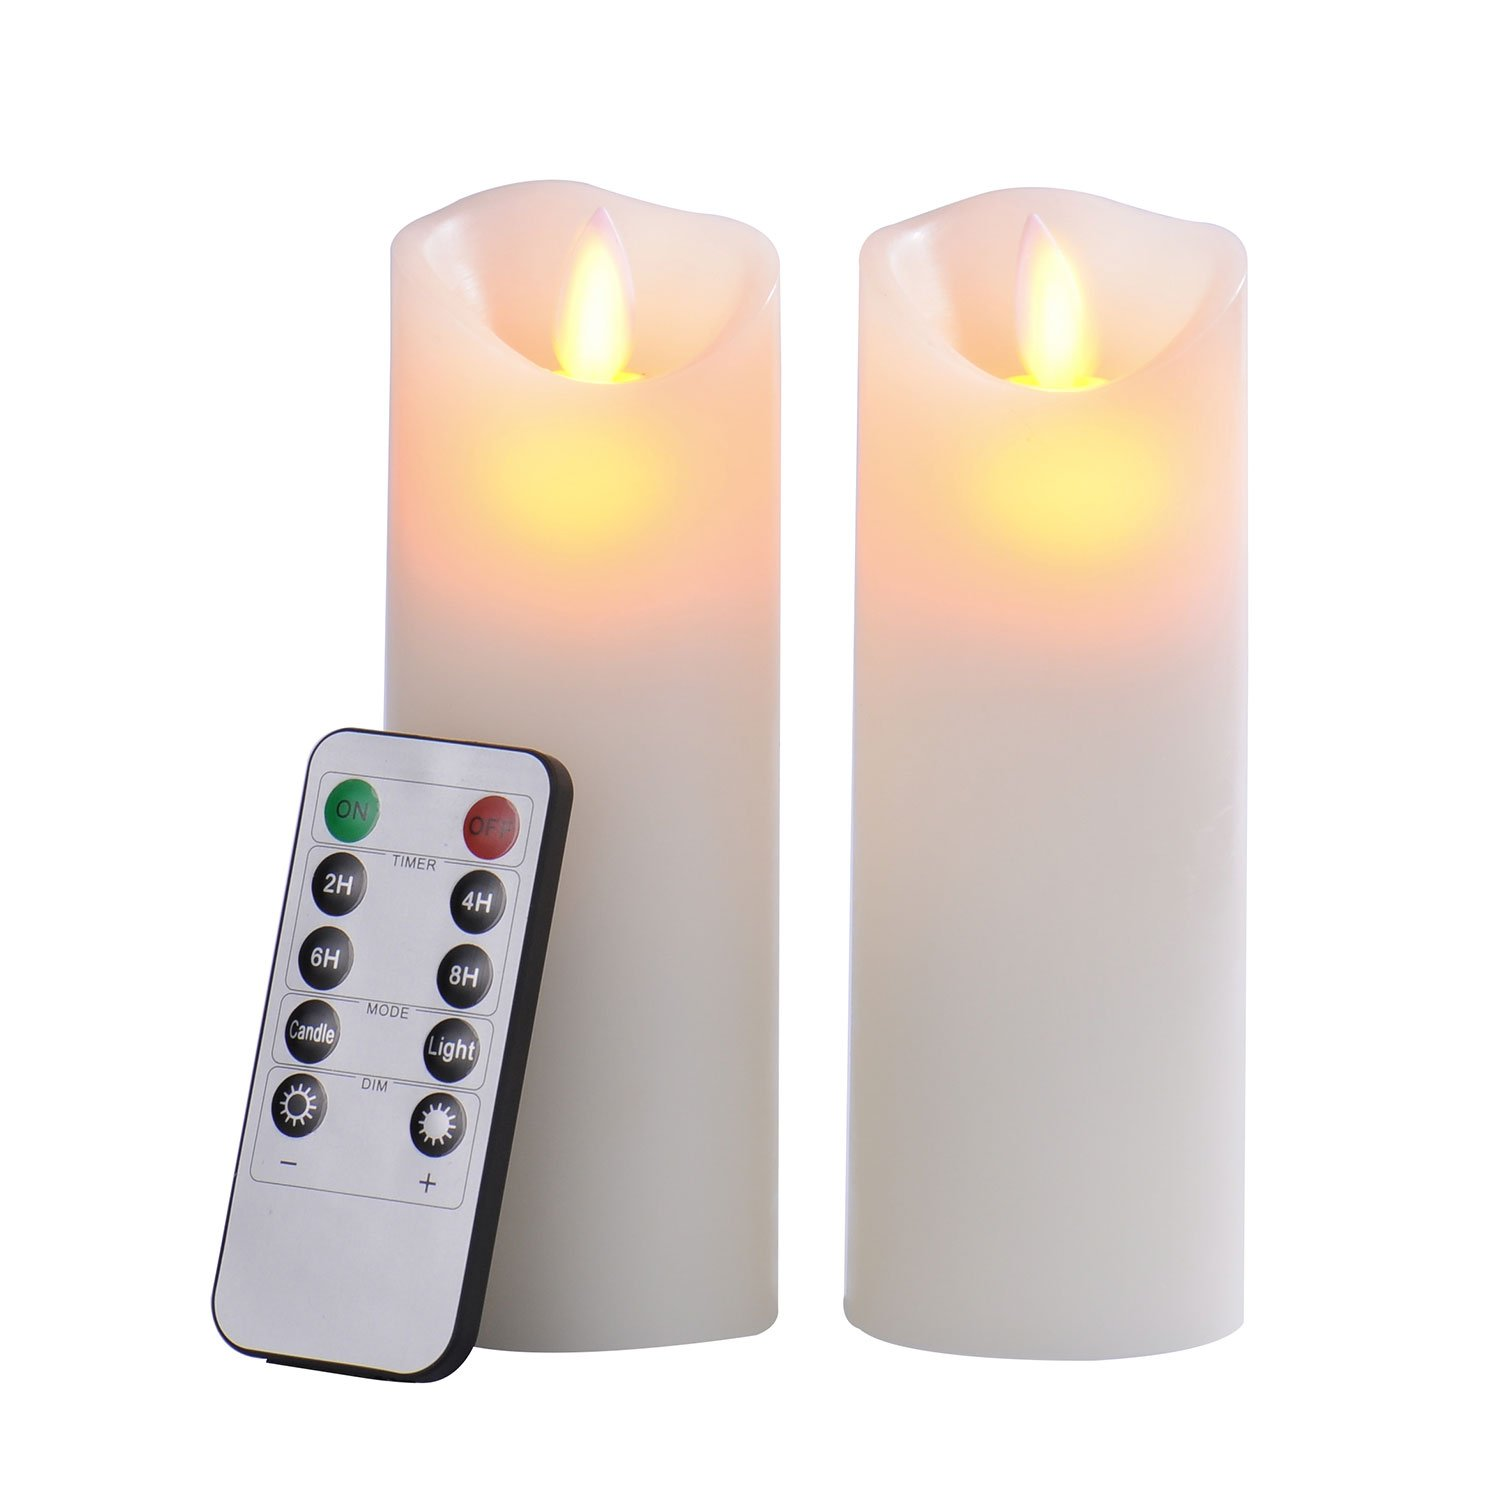 Pandaing 2.2''x6'' Set of 2 Battery-powered Classic Pillar Real Wax Moving Wick Flameless LED Candles with Timer & 10-key Remote Control, Ivory Color